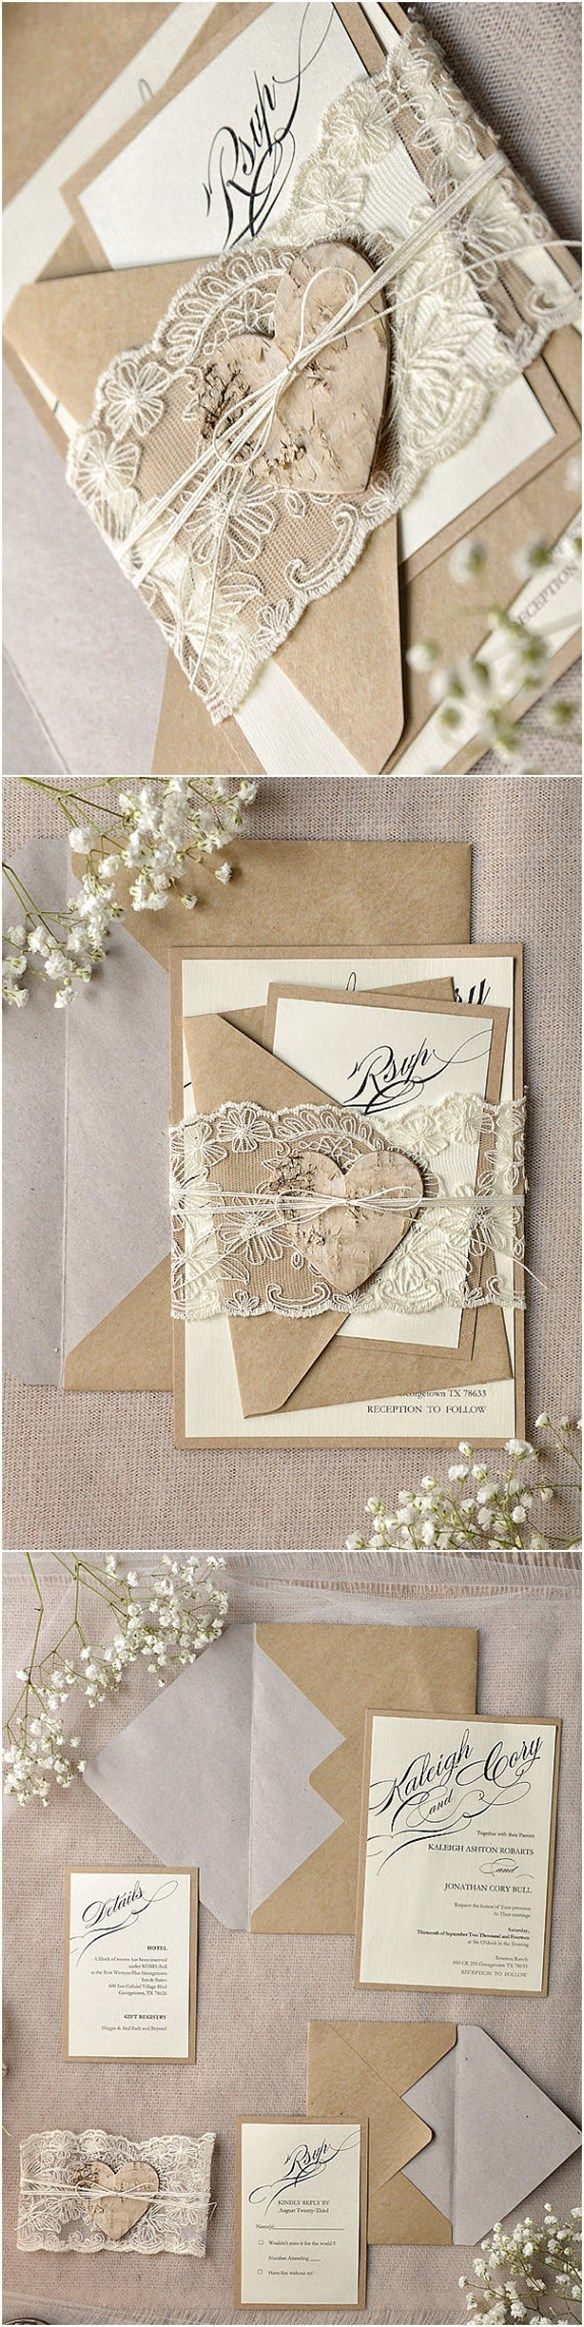 rustic wedding invitations diy kits%0A Rustic Calligraphy Recycled Lace Wedding Invitation Kits  so pretty